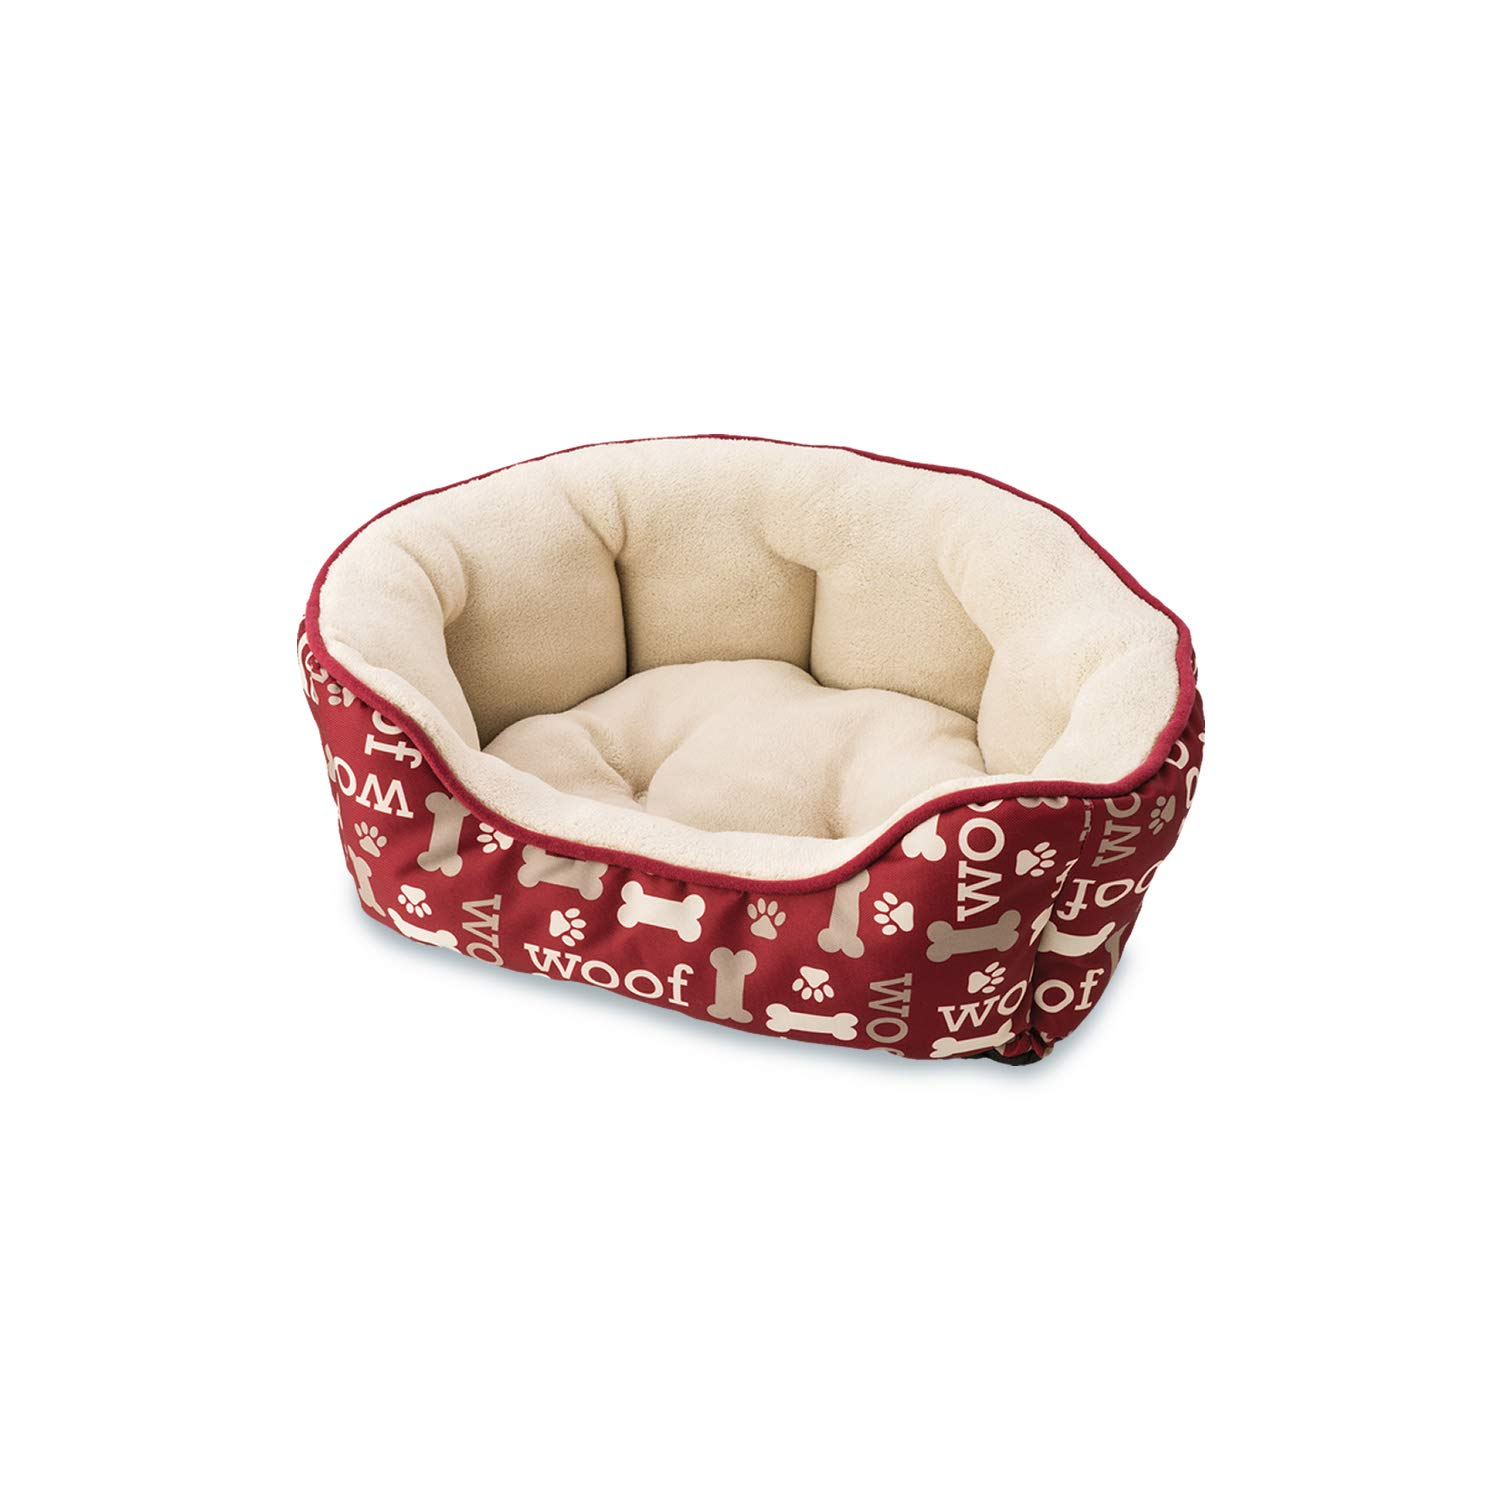 Ethical Pets 31008 Sleepzone Scallop Woof  Step in Dog Bed, 24 , Burgundy